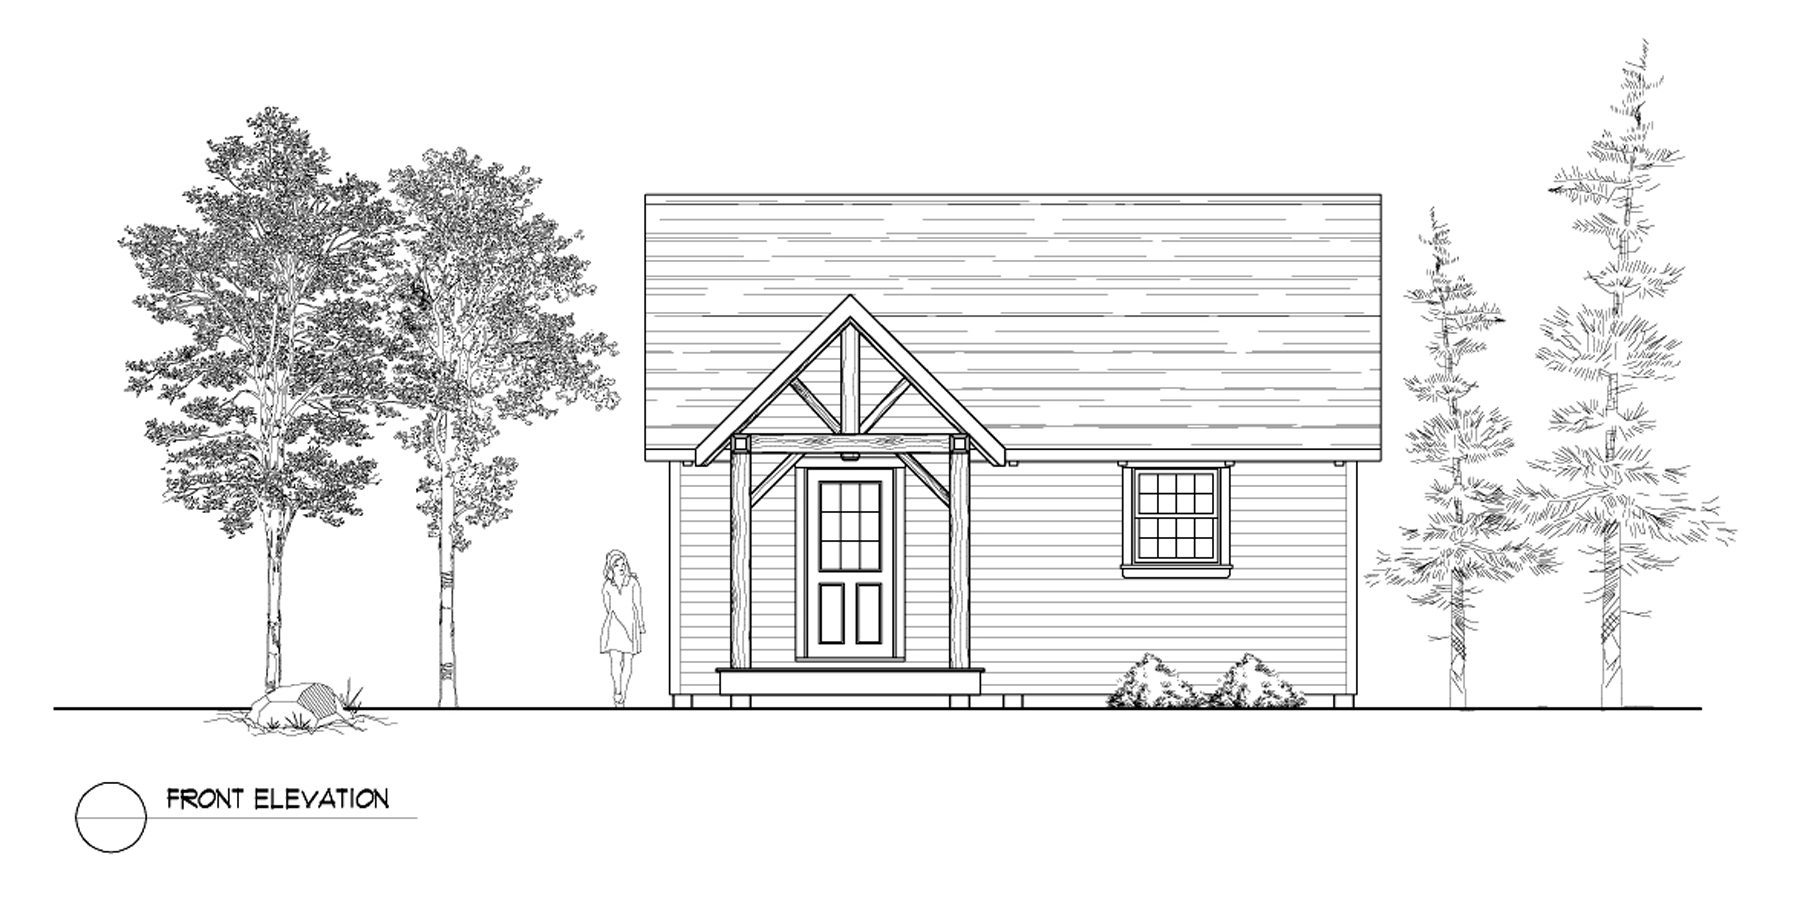 Normerica Timber Frames, House Plan, The Dillon 2254, Front Elevation